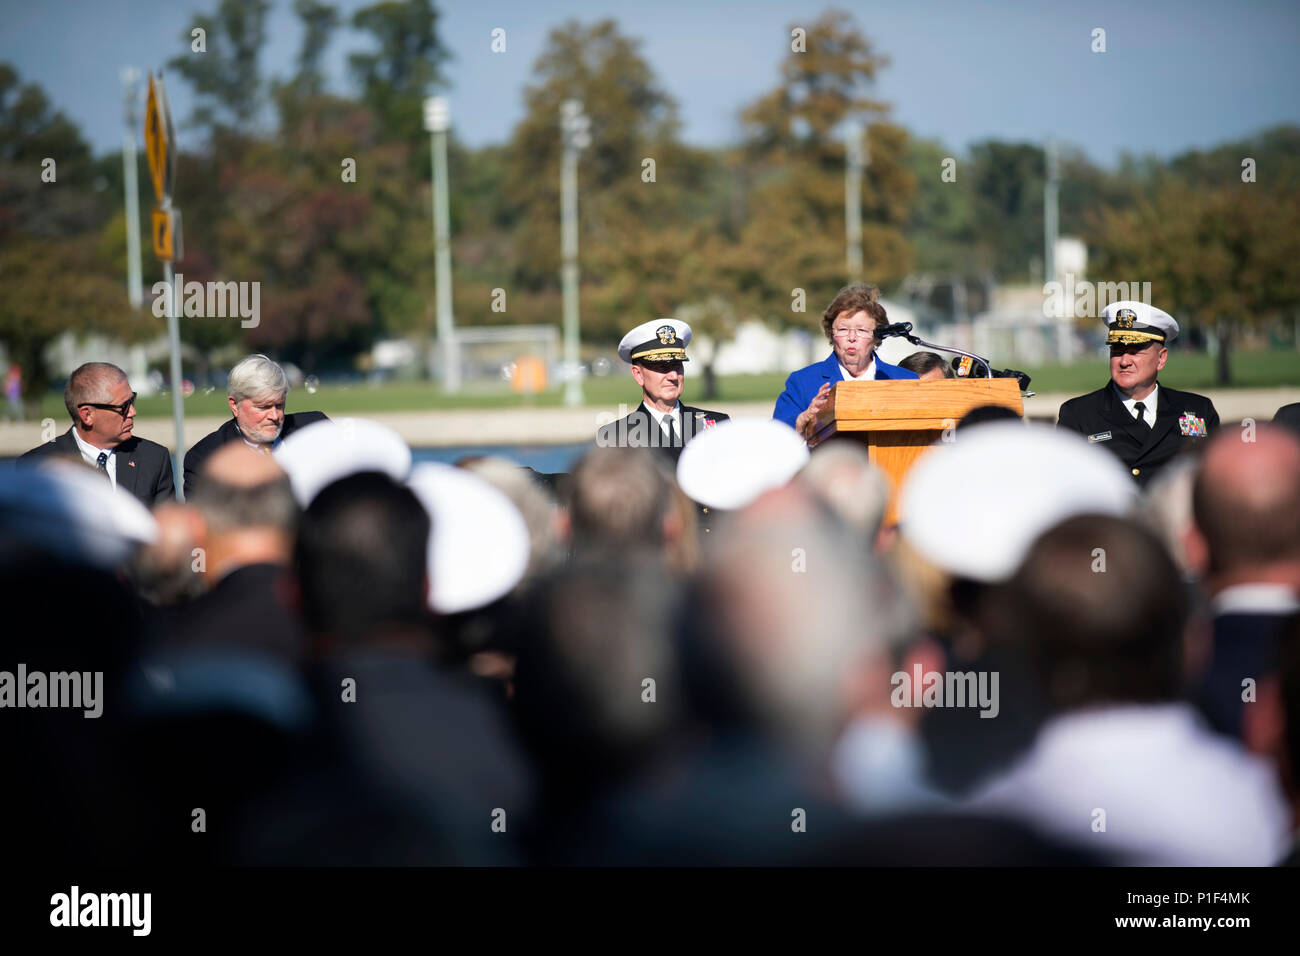 161021-N-DY073-035  ANNAPOLIS, Md. (Oct. 21, 2016) Barbara Mikulski, United States Senator for Maryland, speaks at the ground breaking ceremony for Hopper Hall at the United States Naval Academy (USNA). Hopper Hall, which will house USNA's Center for Cyber Studies, is the namesake of Rear Adm. Grace Hopper who is often referred to as 'The Mother of Computing'. (U.S. Navy photo by Petty Officer 3rd Class Brianna Jones/Released) - Stock Image